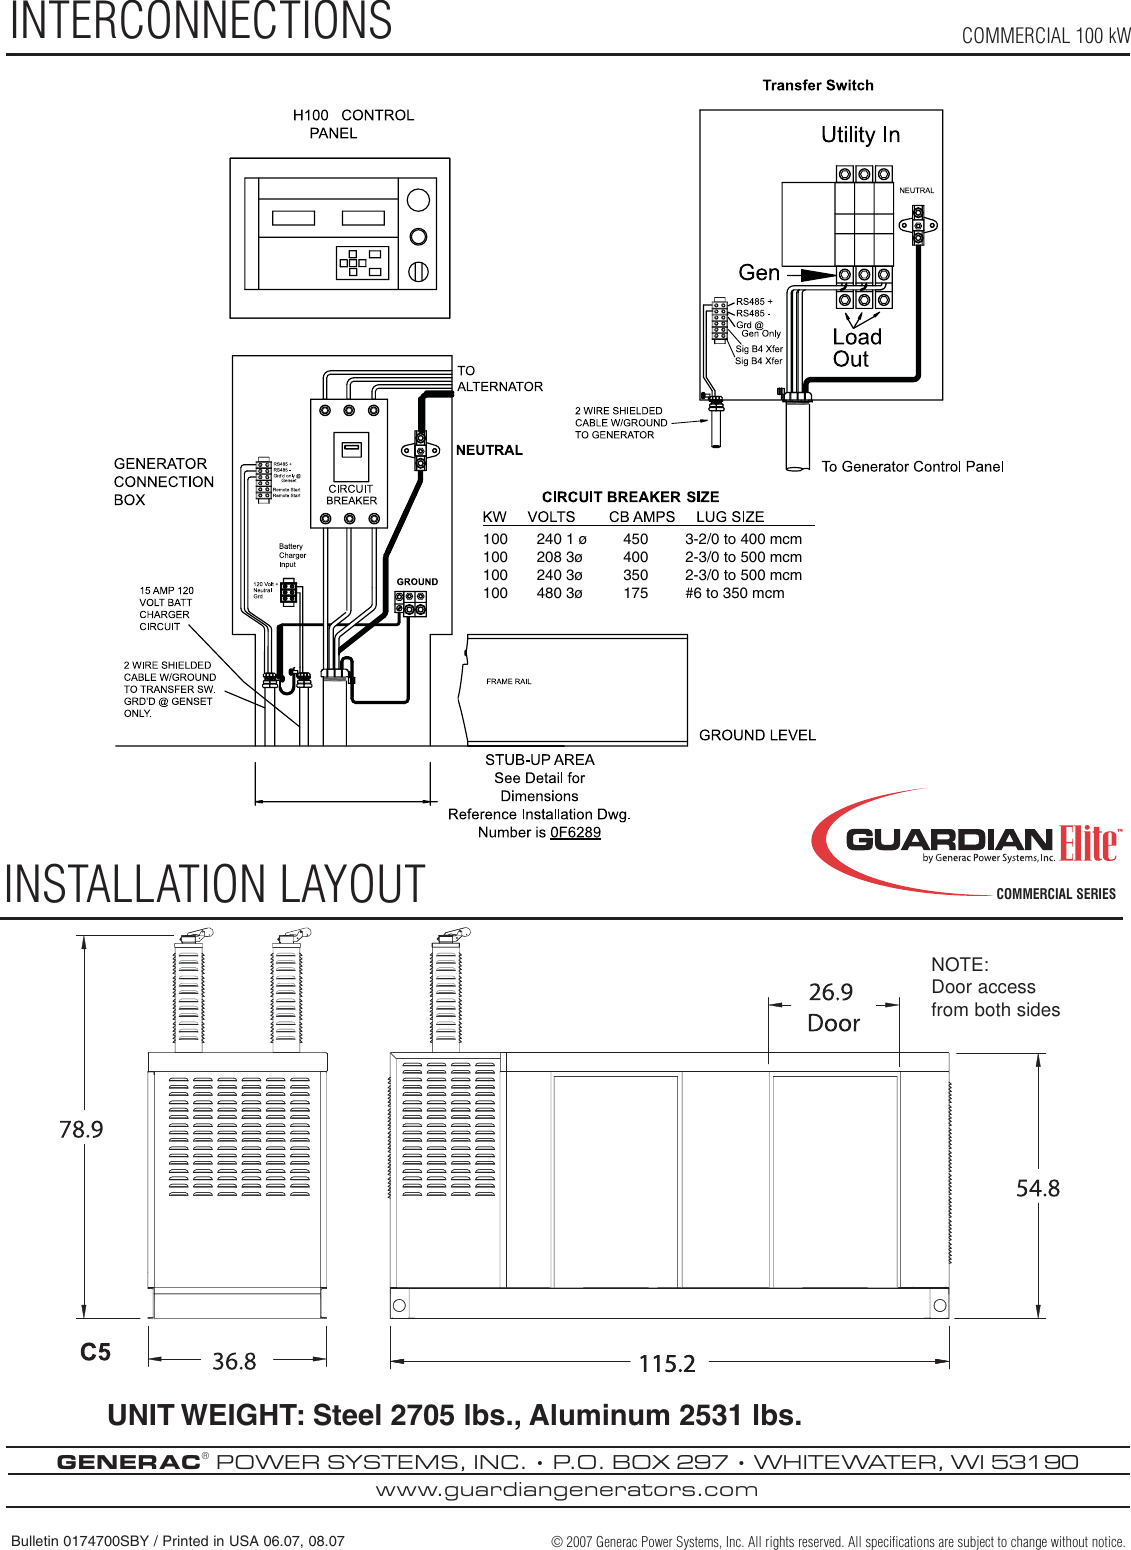 Guardian Technologies Qt10068 Users Manual 0174700sbygelitecomm100kw Cb 175 Wiring Diagram Page 4 Of